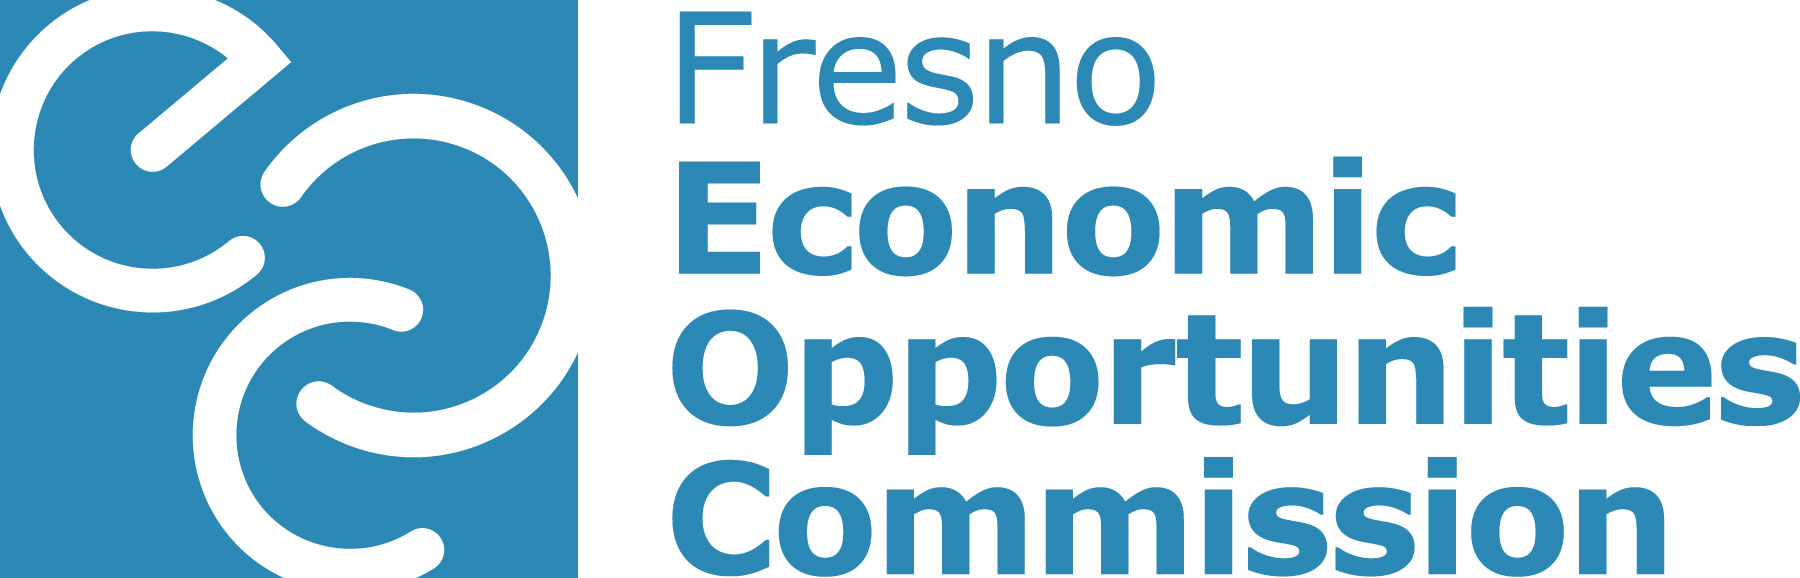 Fresno Economic Opportunities Commission